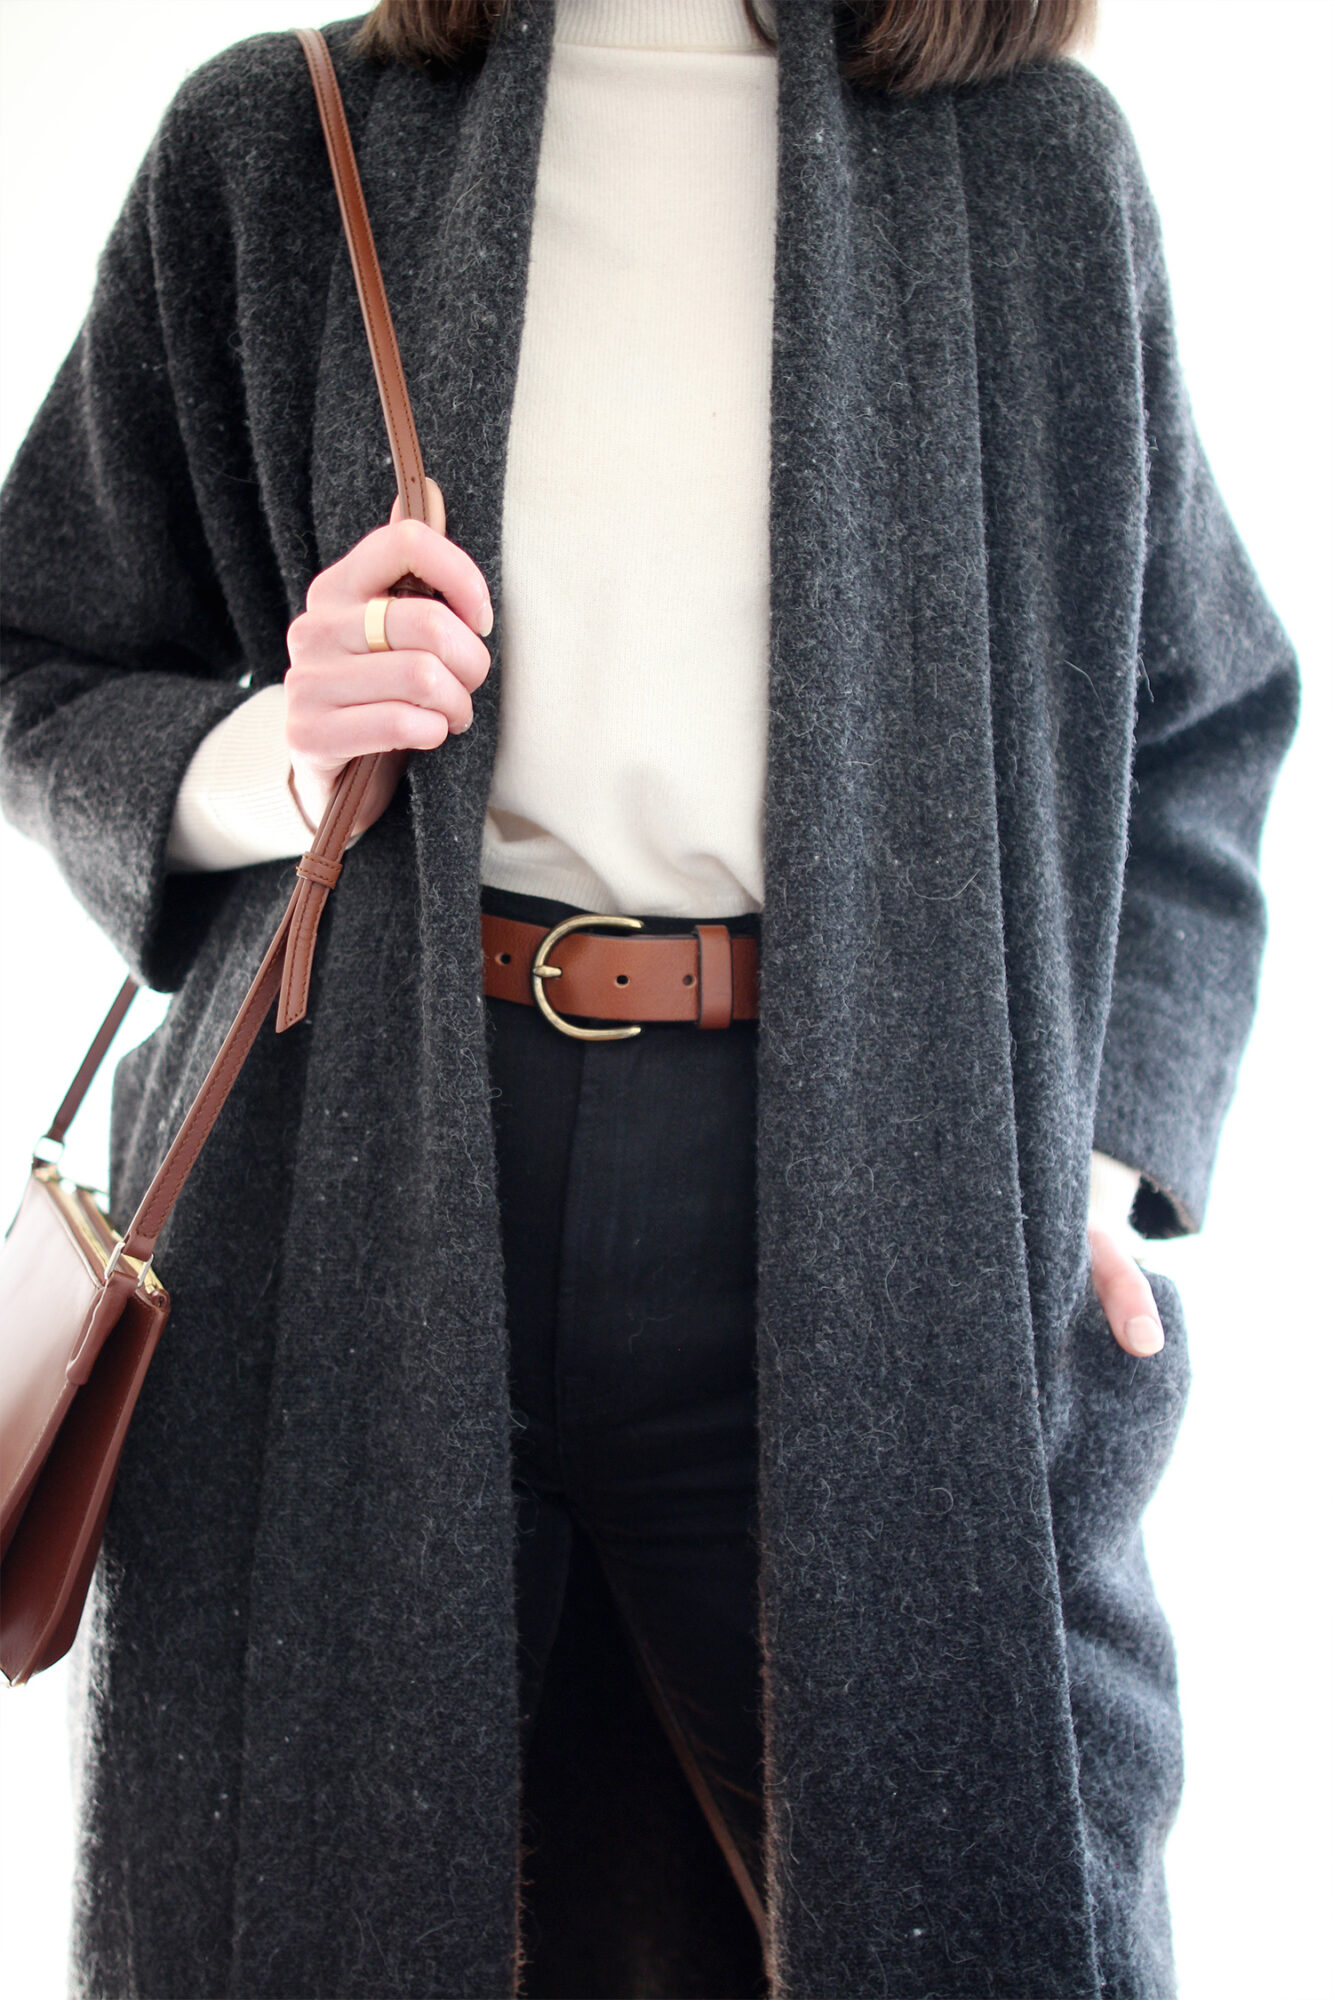 Woman wearing grey wool sweater coat, ivory mockneck sweater, brown leather belt, black jeans, black boots, and brown bag.